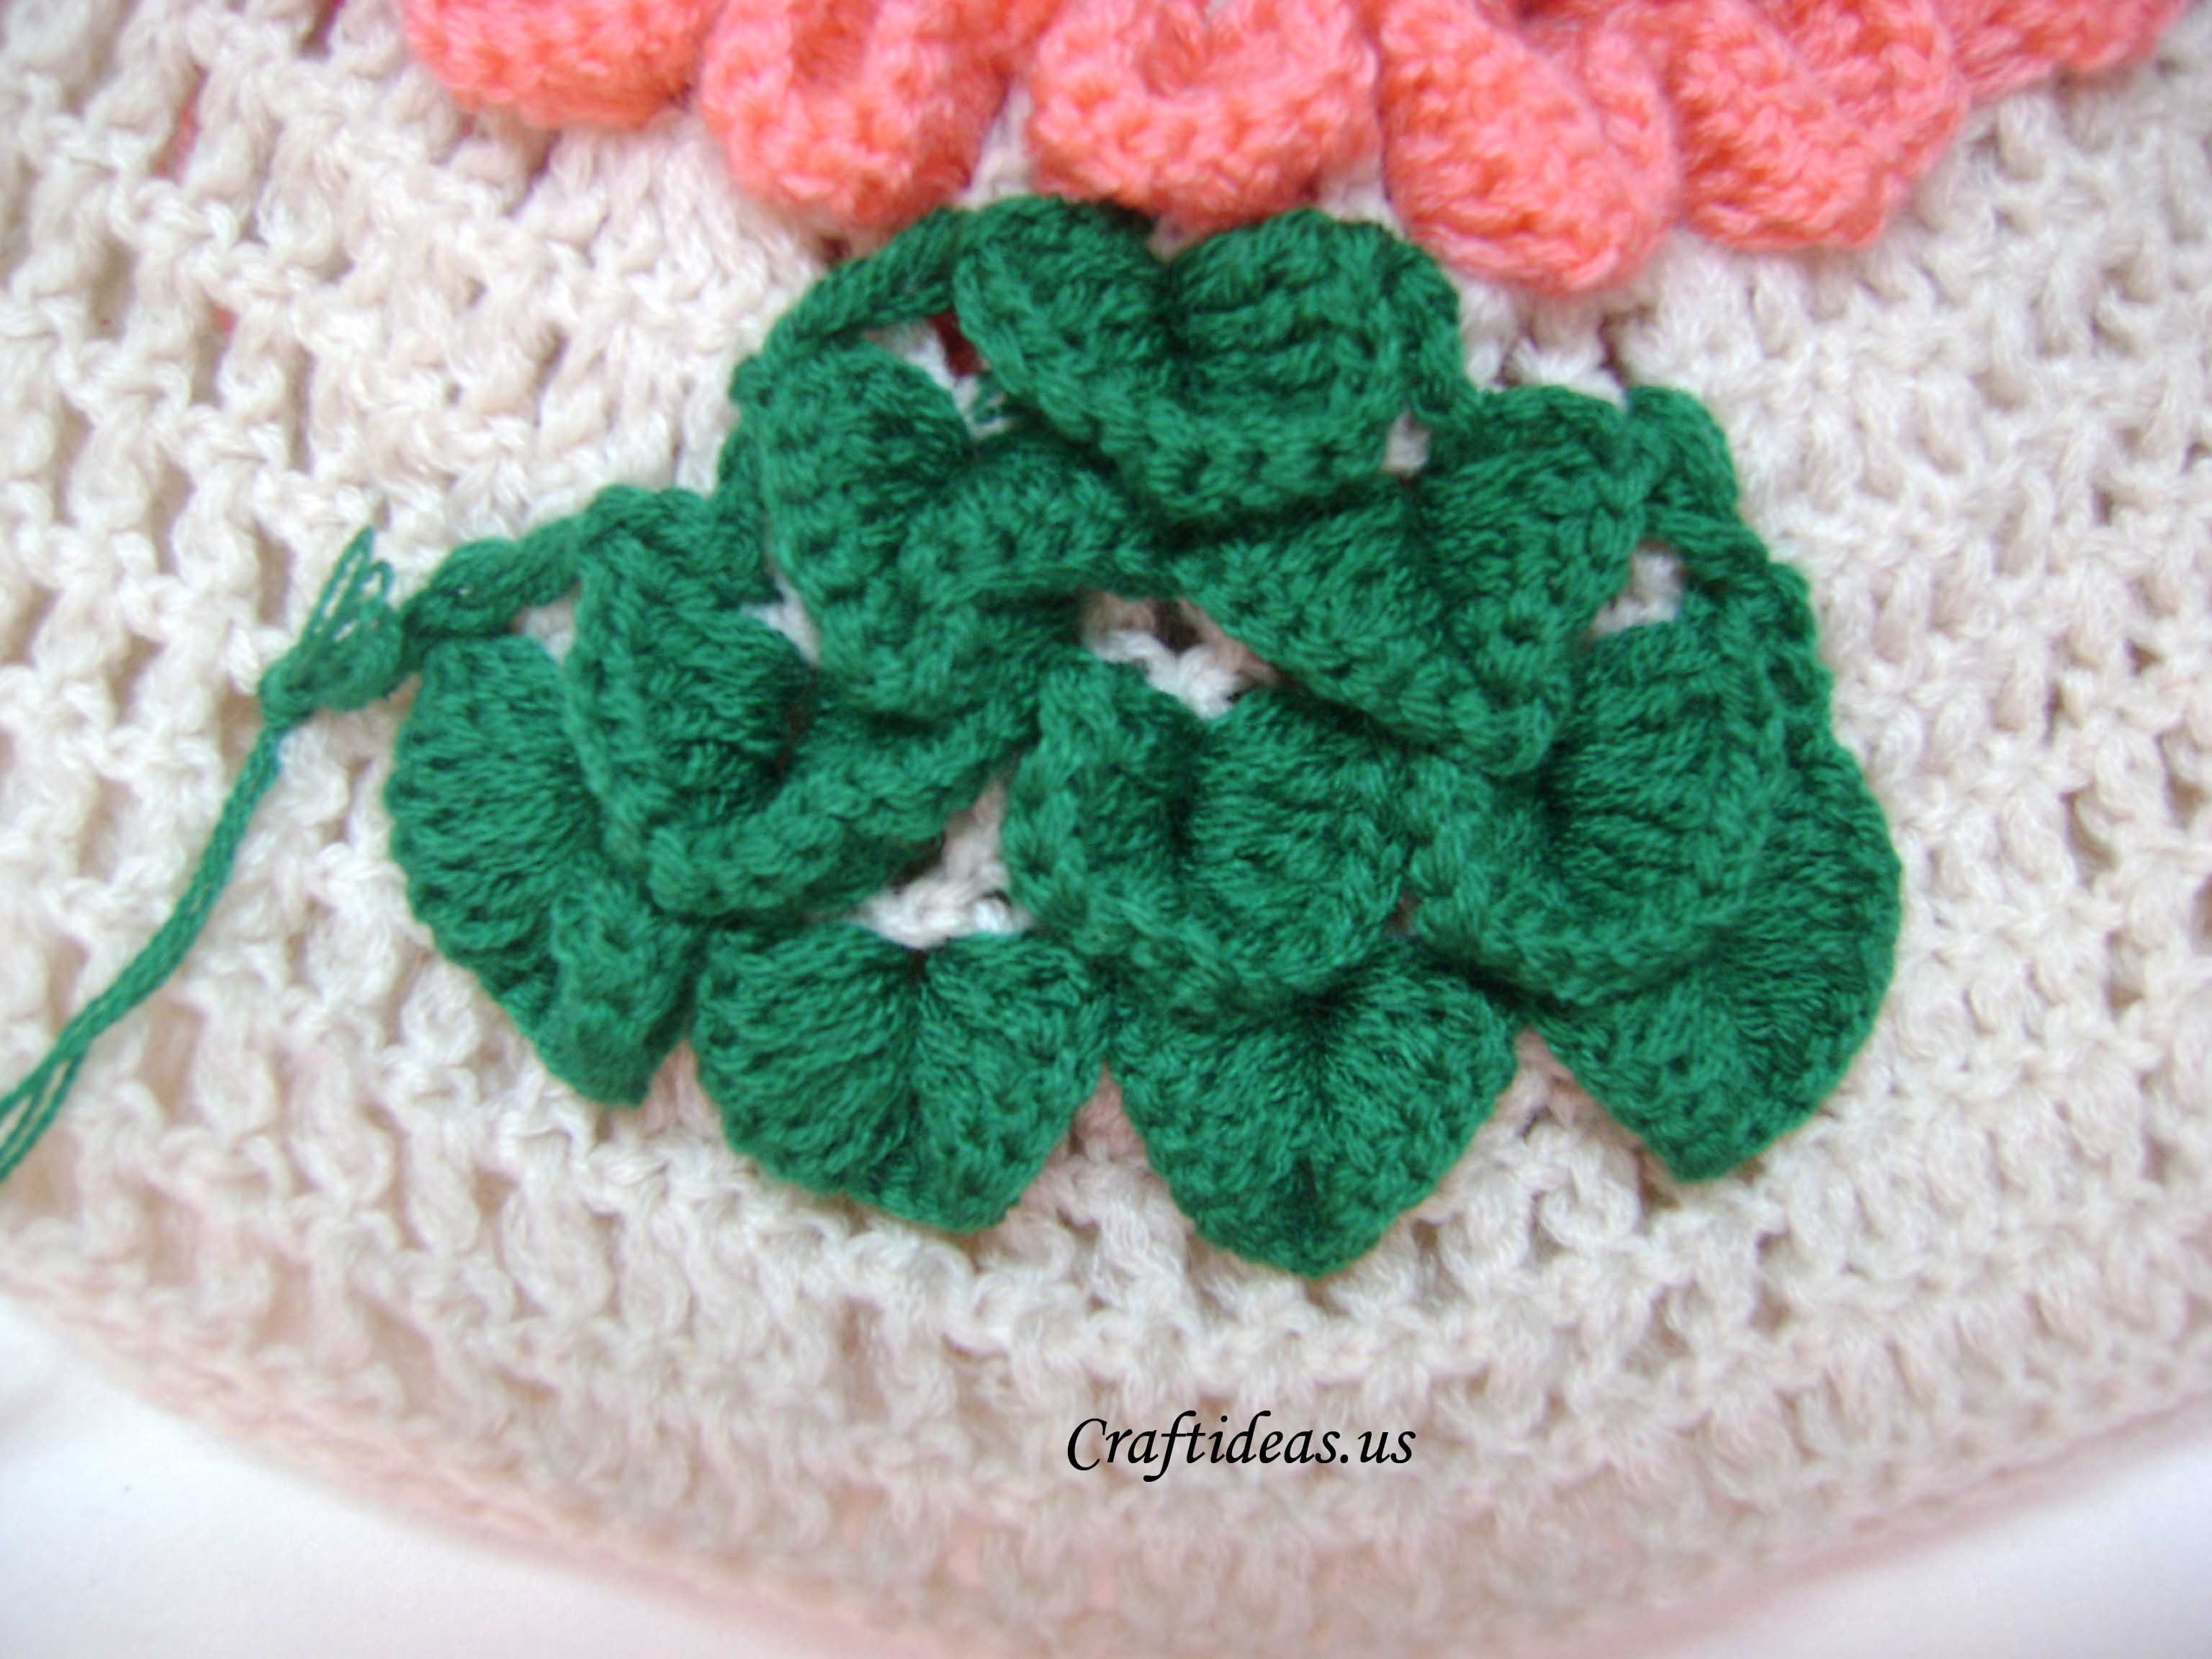 Crochet Crafts : Christmas Craft Ideas Crocheted Beauty Snowflake Tutorial Make ...